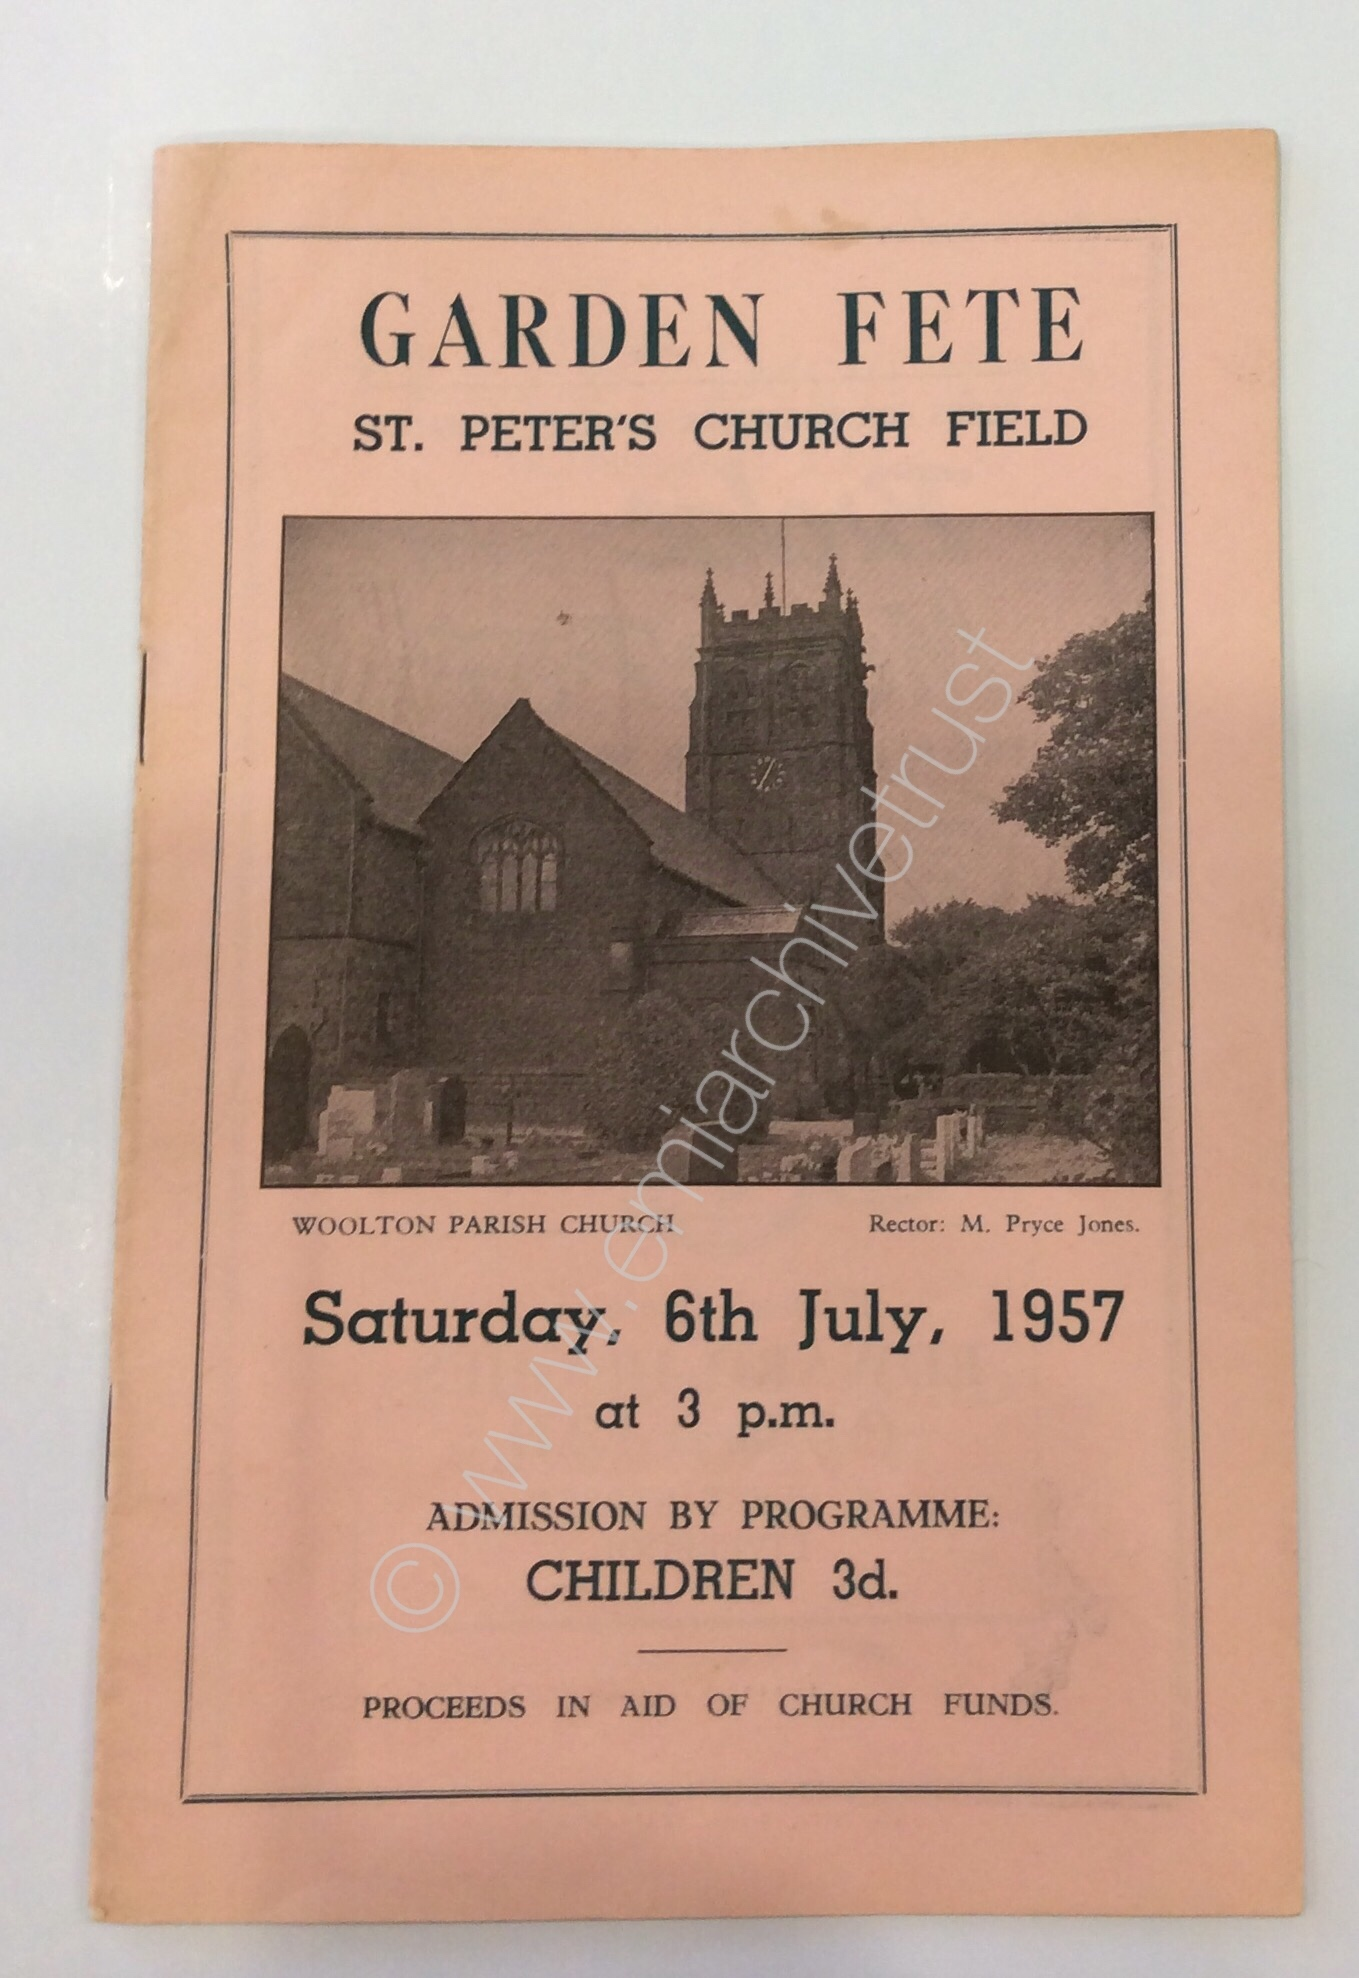 Garden Fete St. Peter's Church Field 6th July 1957 - Courtesy of EMI Group Archive Trust